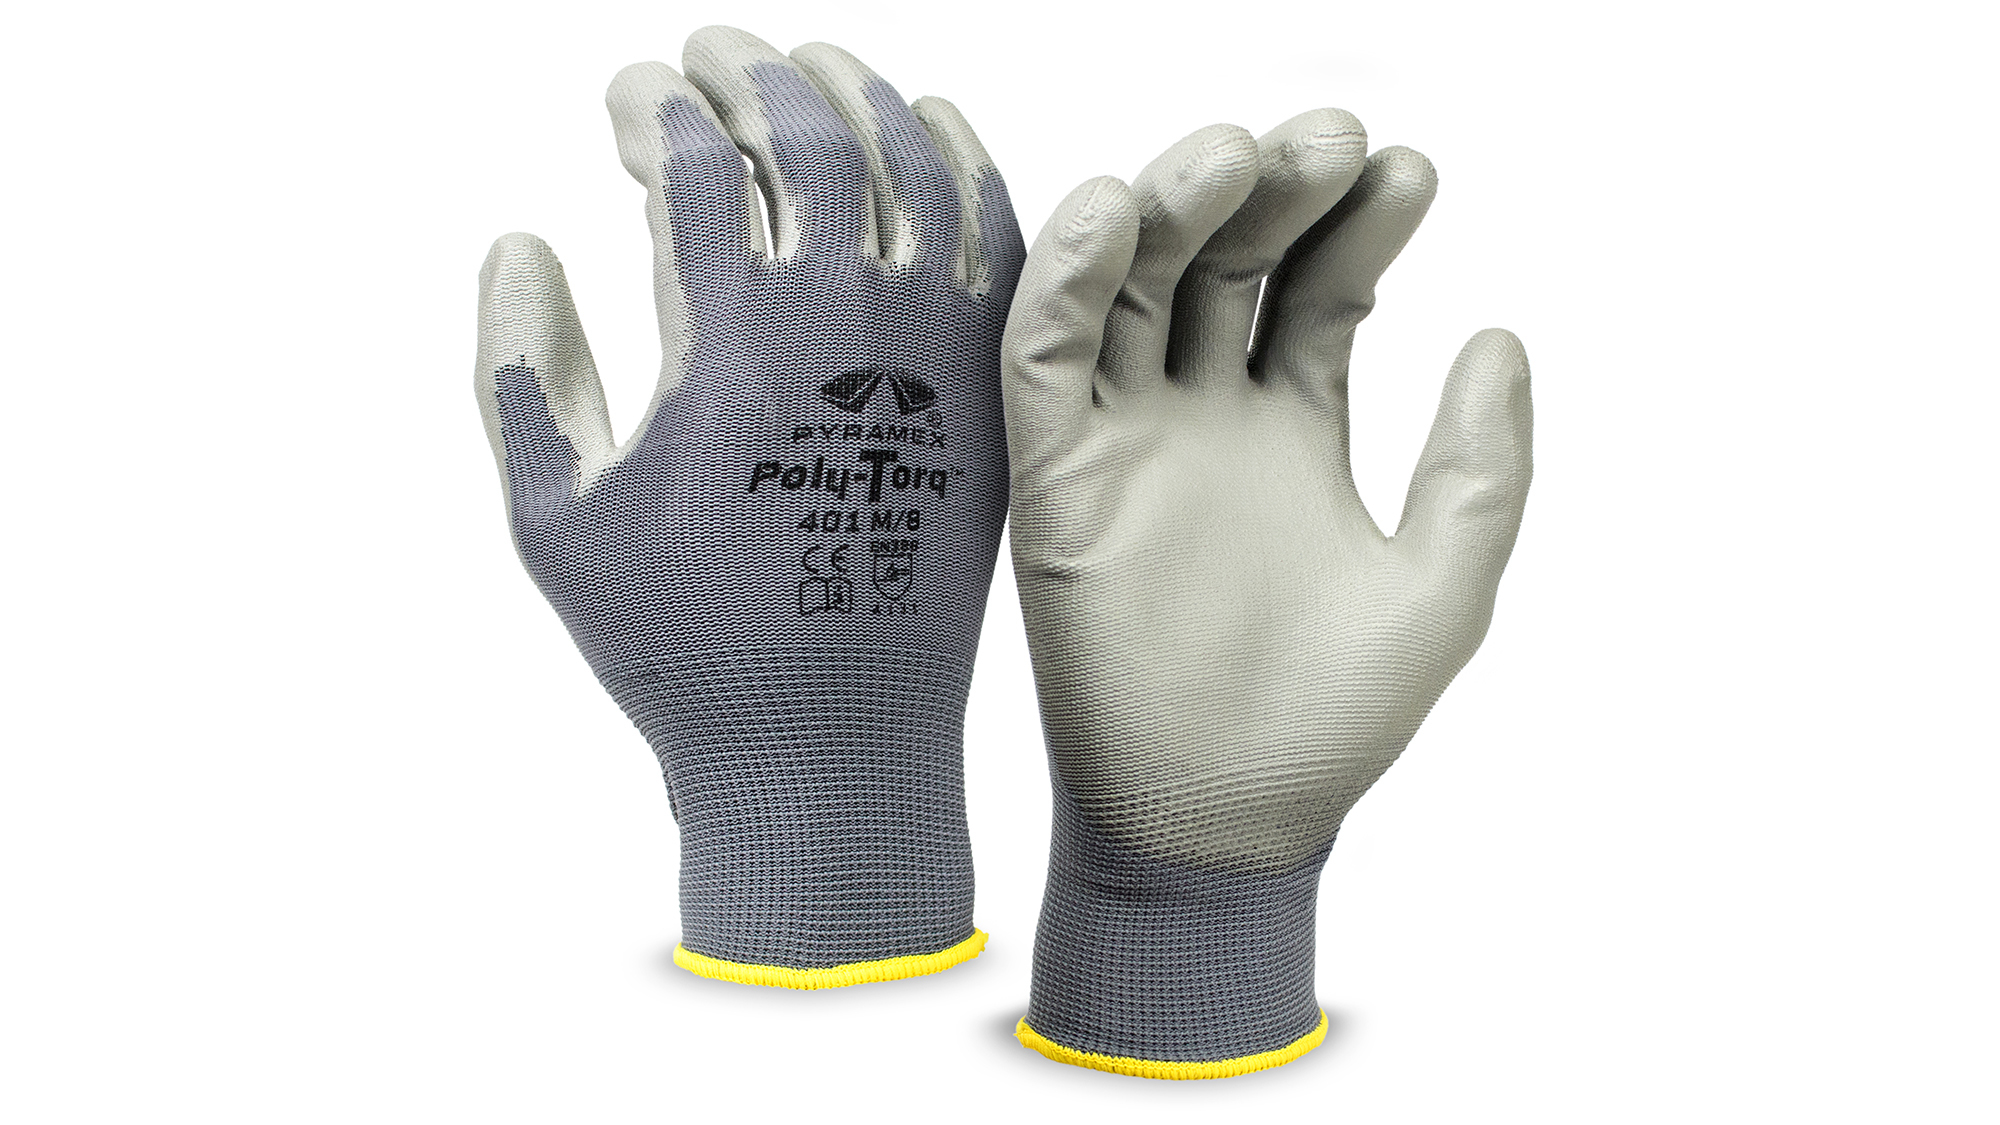 Pyramex GL401 Poly-Torq Polyurethane  Dipped Gloves - Pair